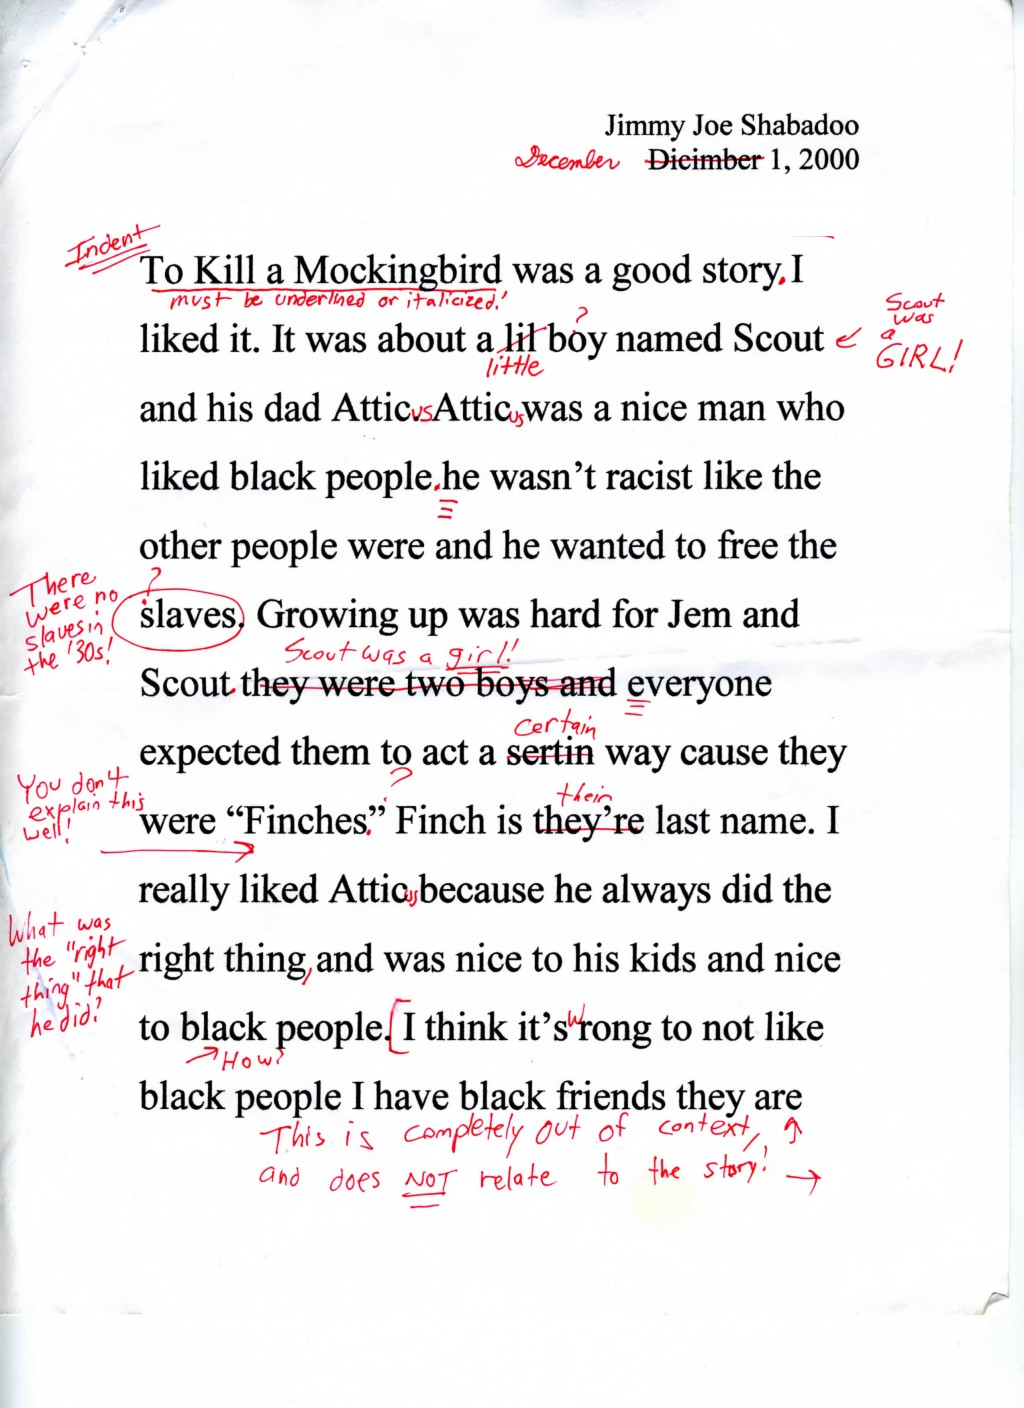 013 Essay Example To Kill Mockingbird Parody Paper Satirical Imposing Examples Satire On Love Gun Control Bullying Large